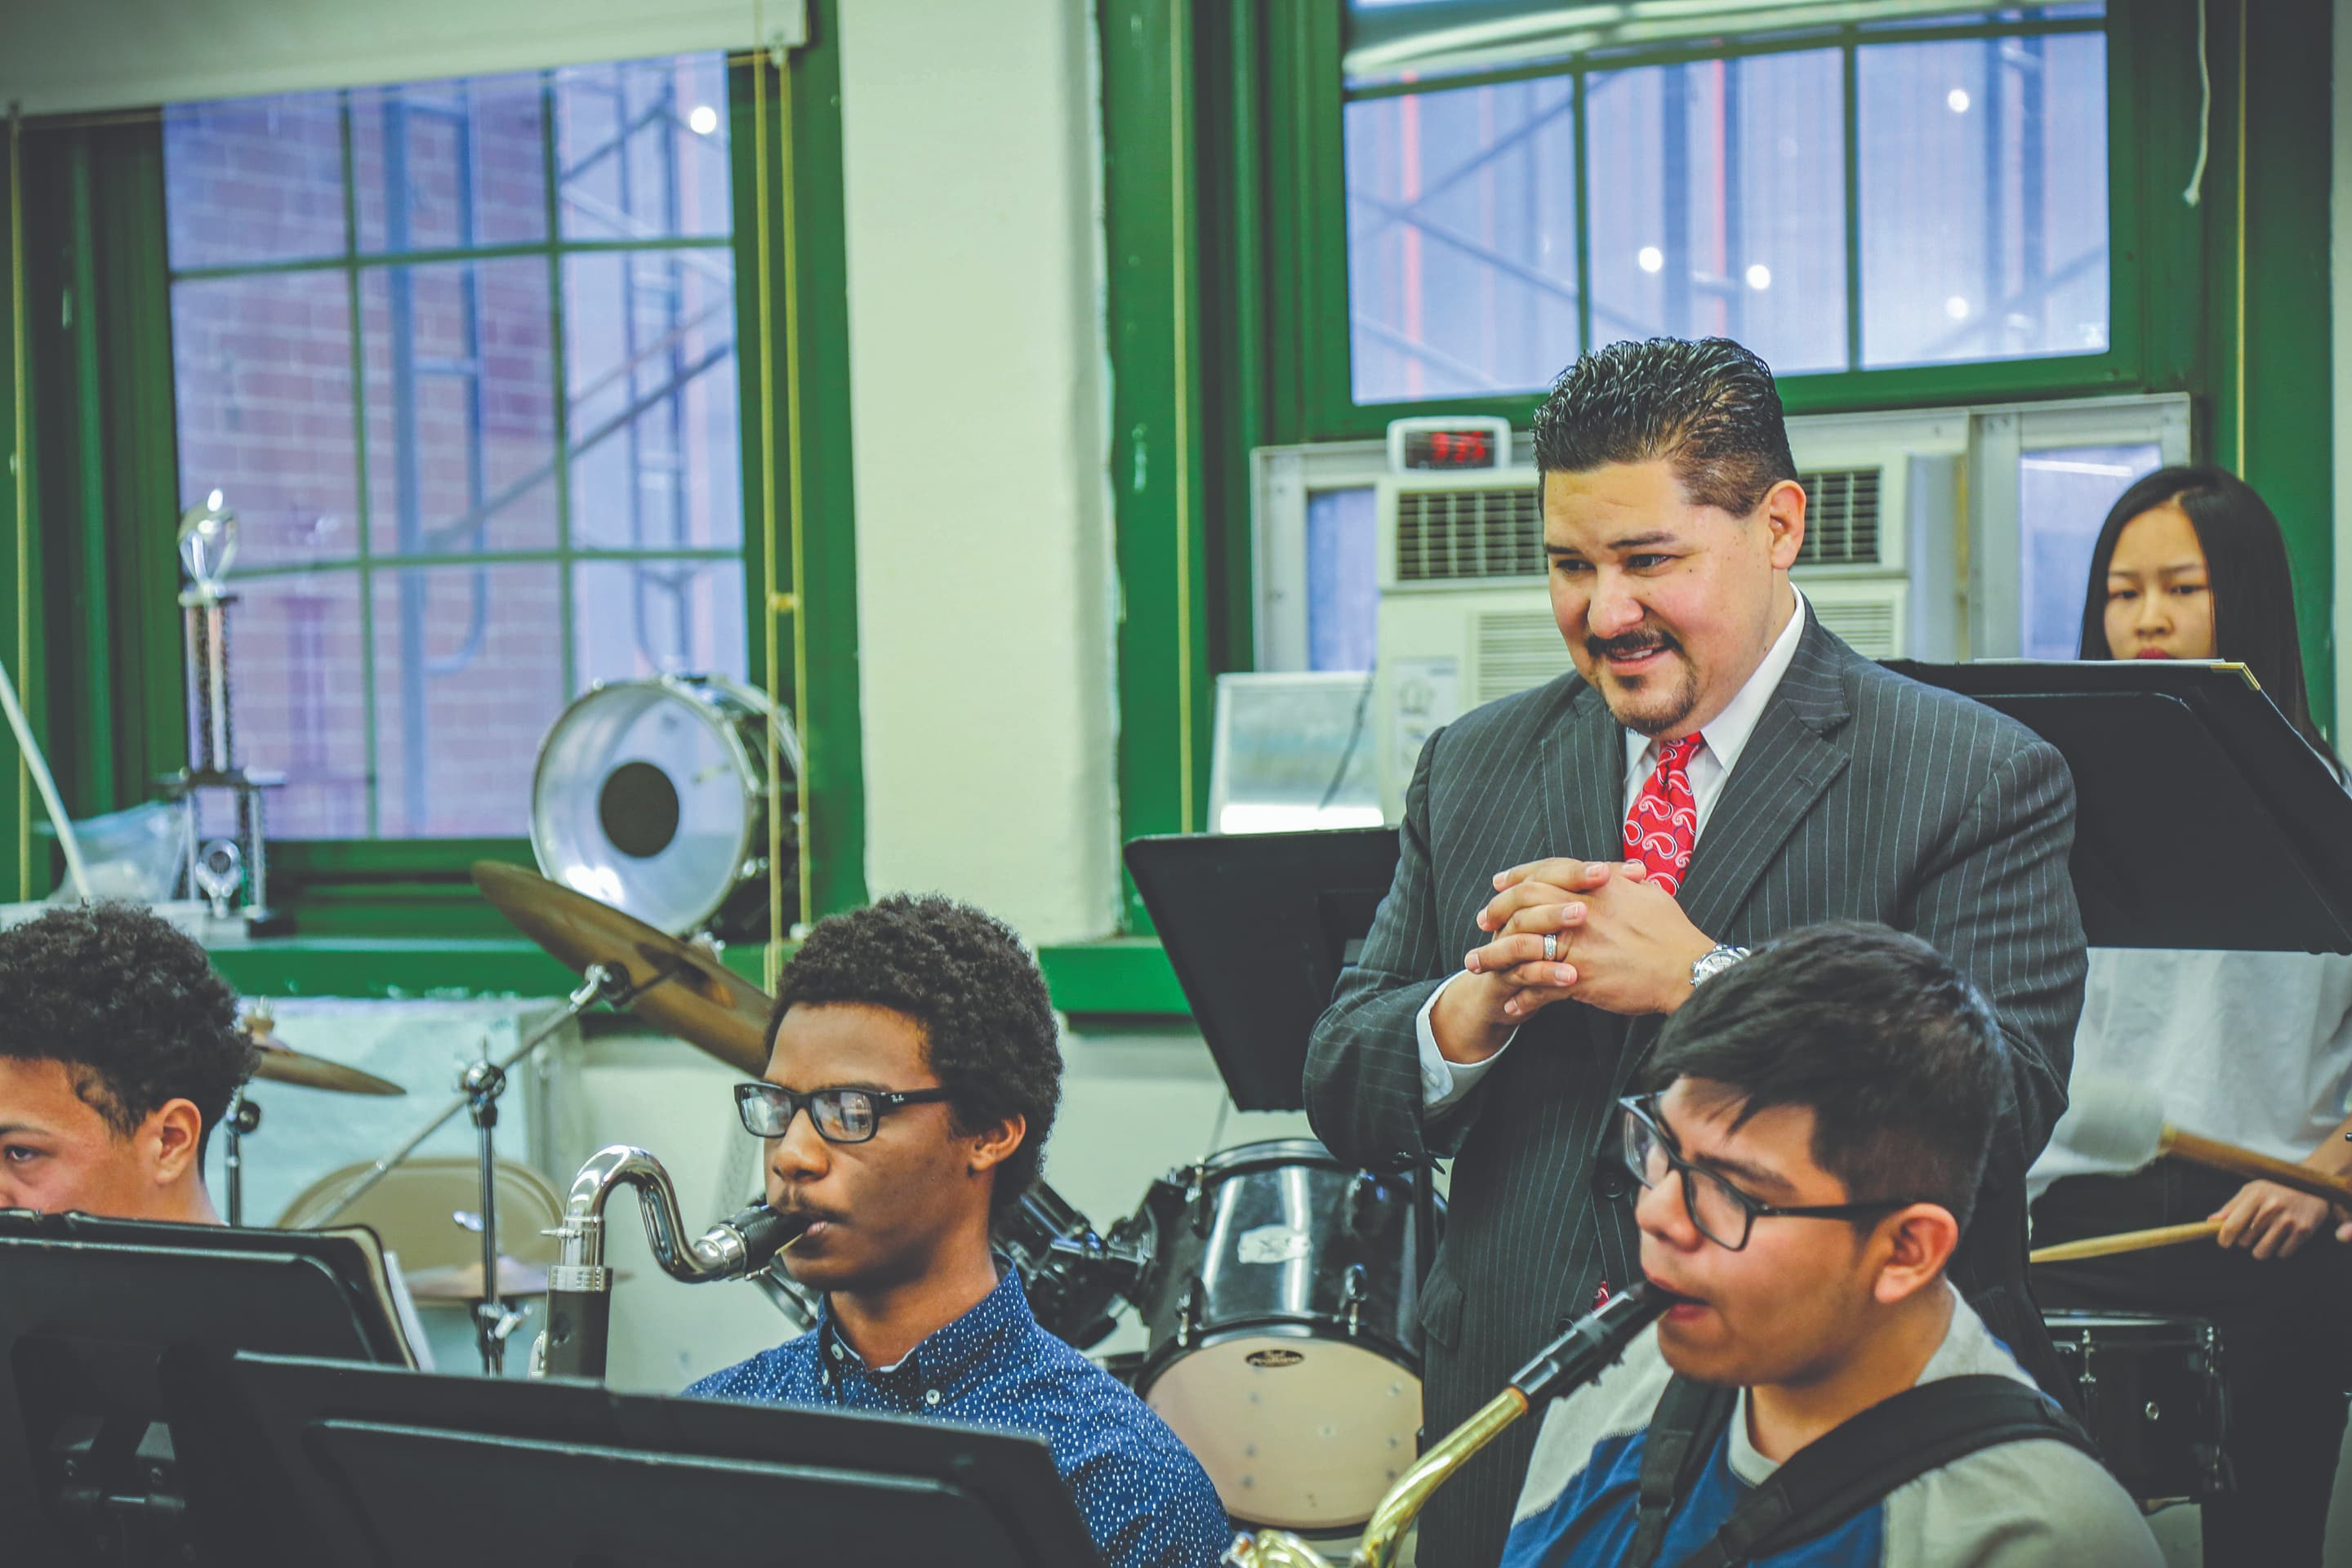 Chancellor Richard A. Carranza listening to band students play in classroom